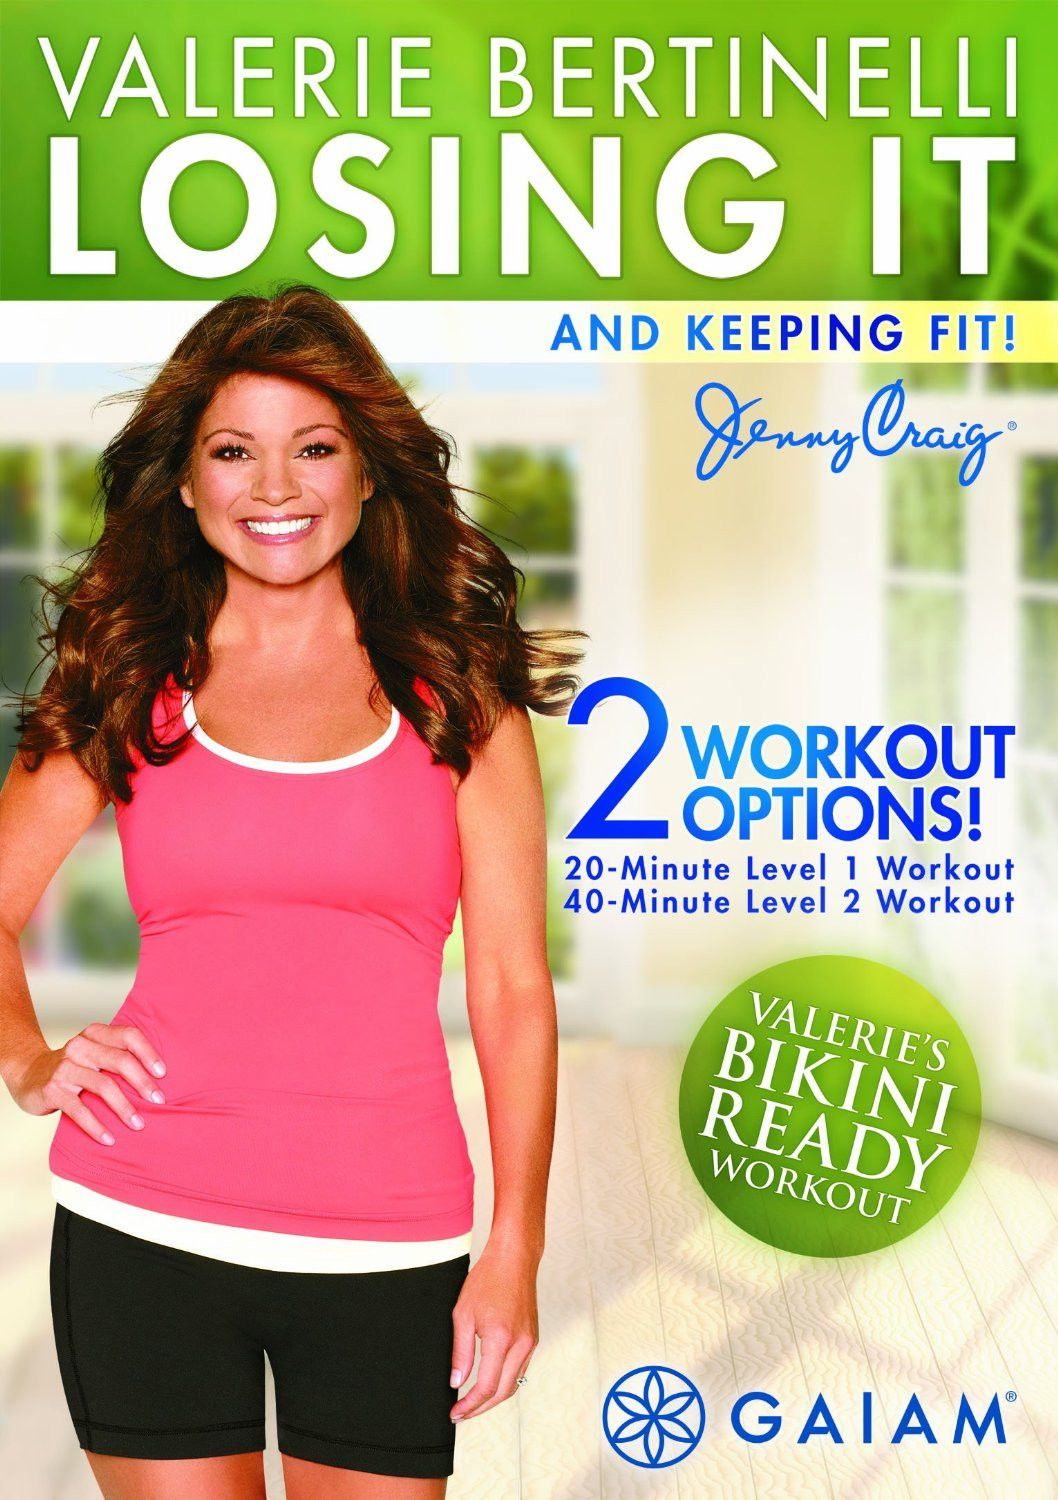 Valerie Bertinelli S Losing It And Keeping Fit Valerie Bertinelli Bikini Workout Valerie